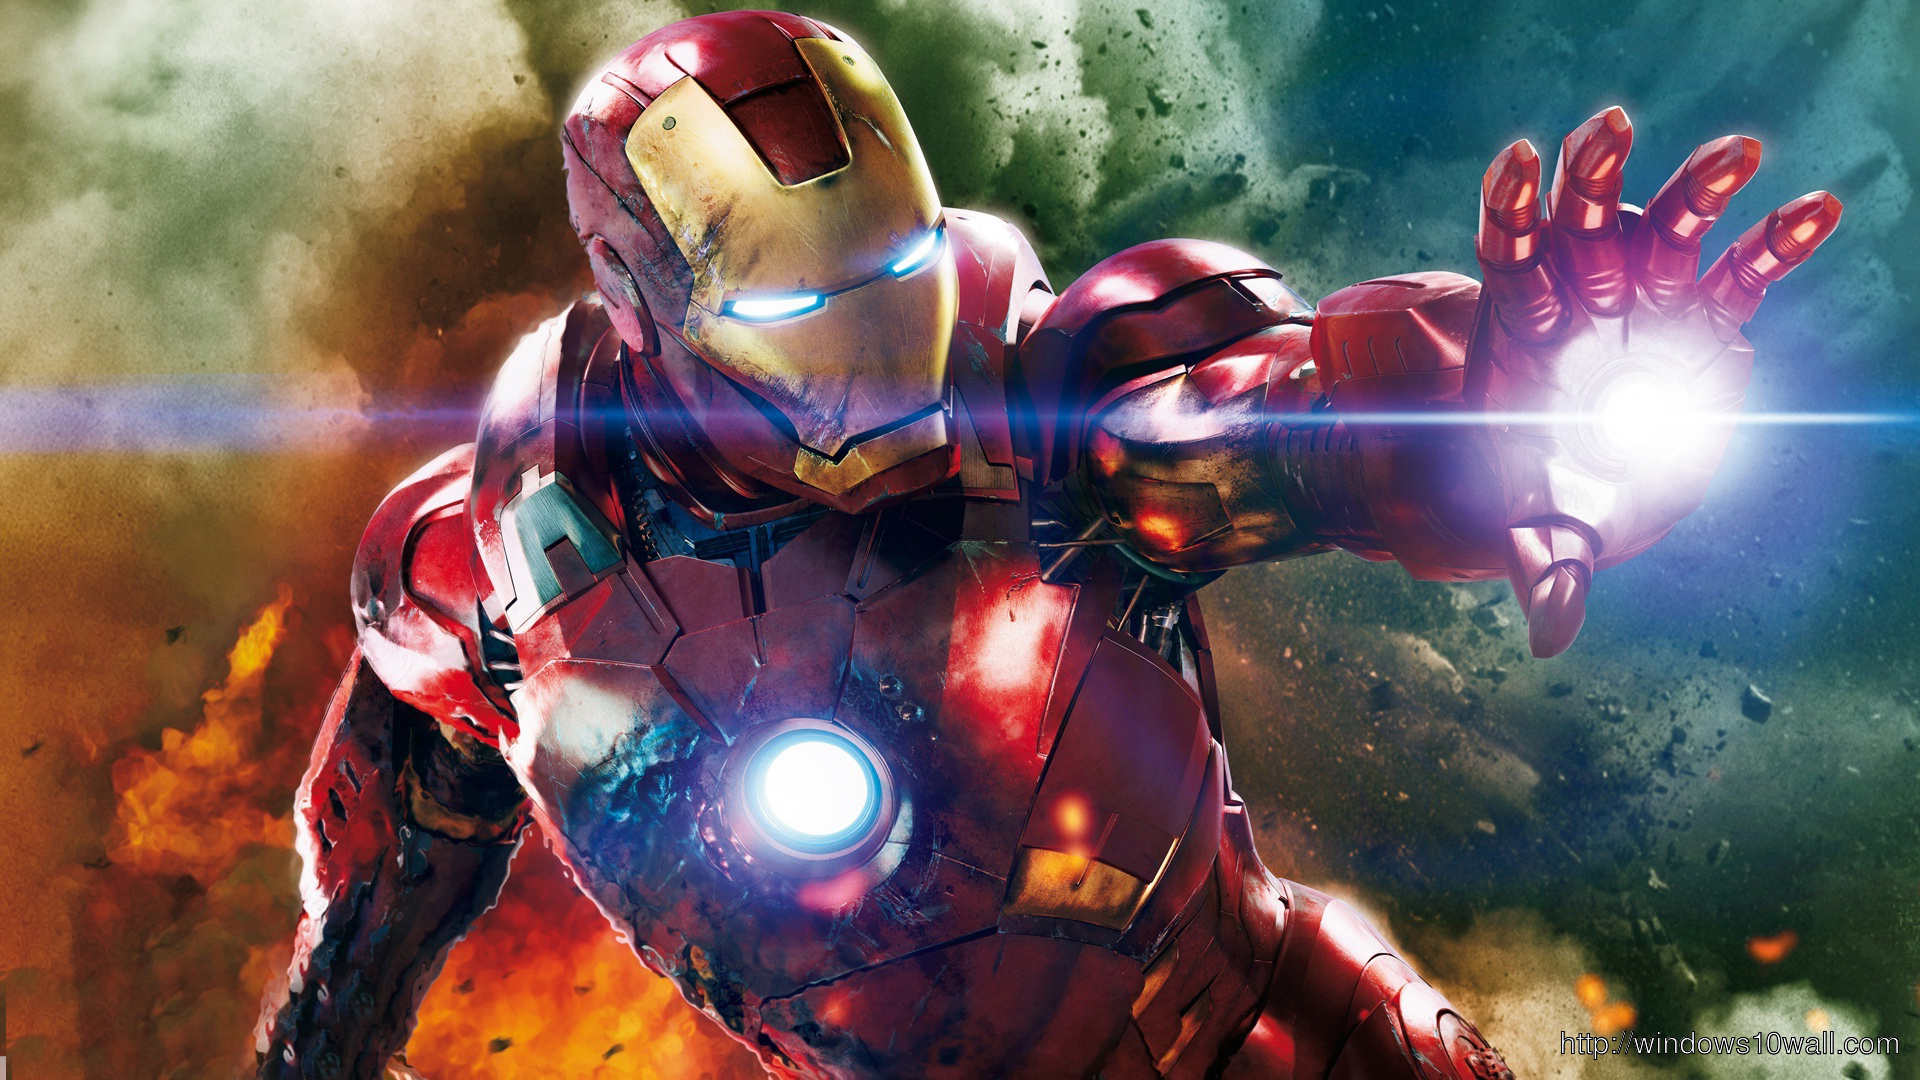 Iron Man 3 Hd Hd Free Wallpaper Windows 10 Wallpapers